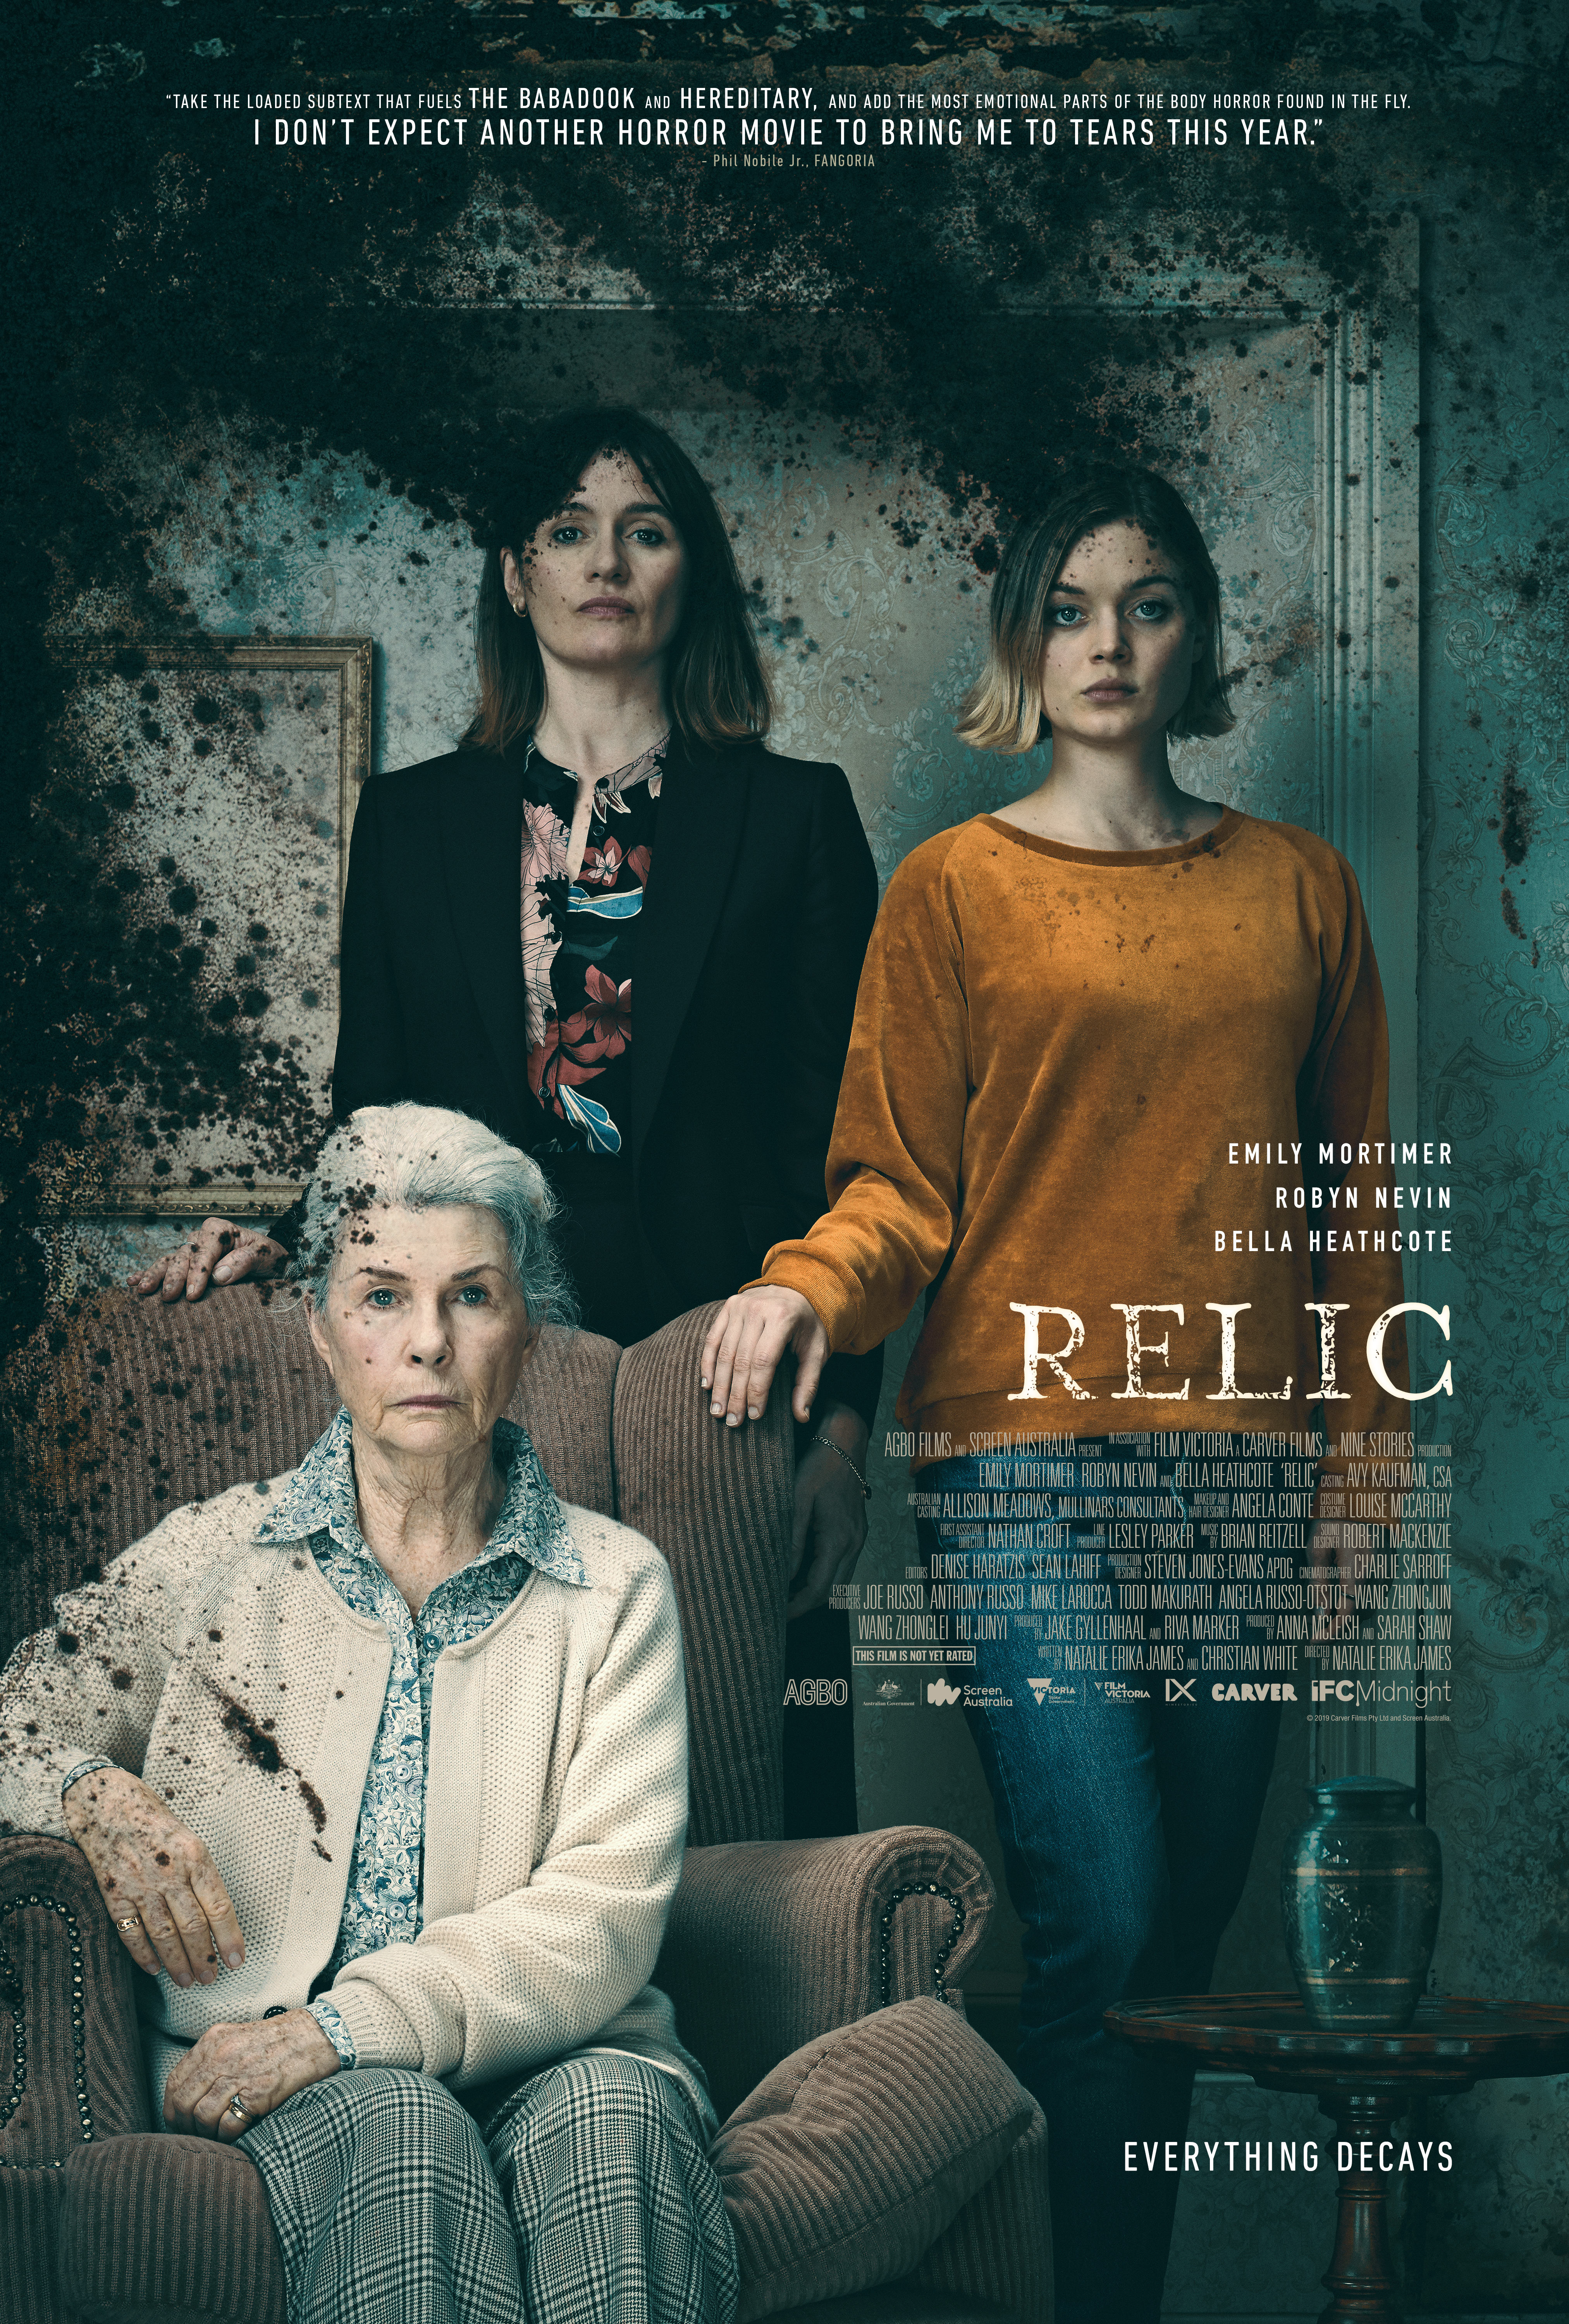 Relic hd on soap2day